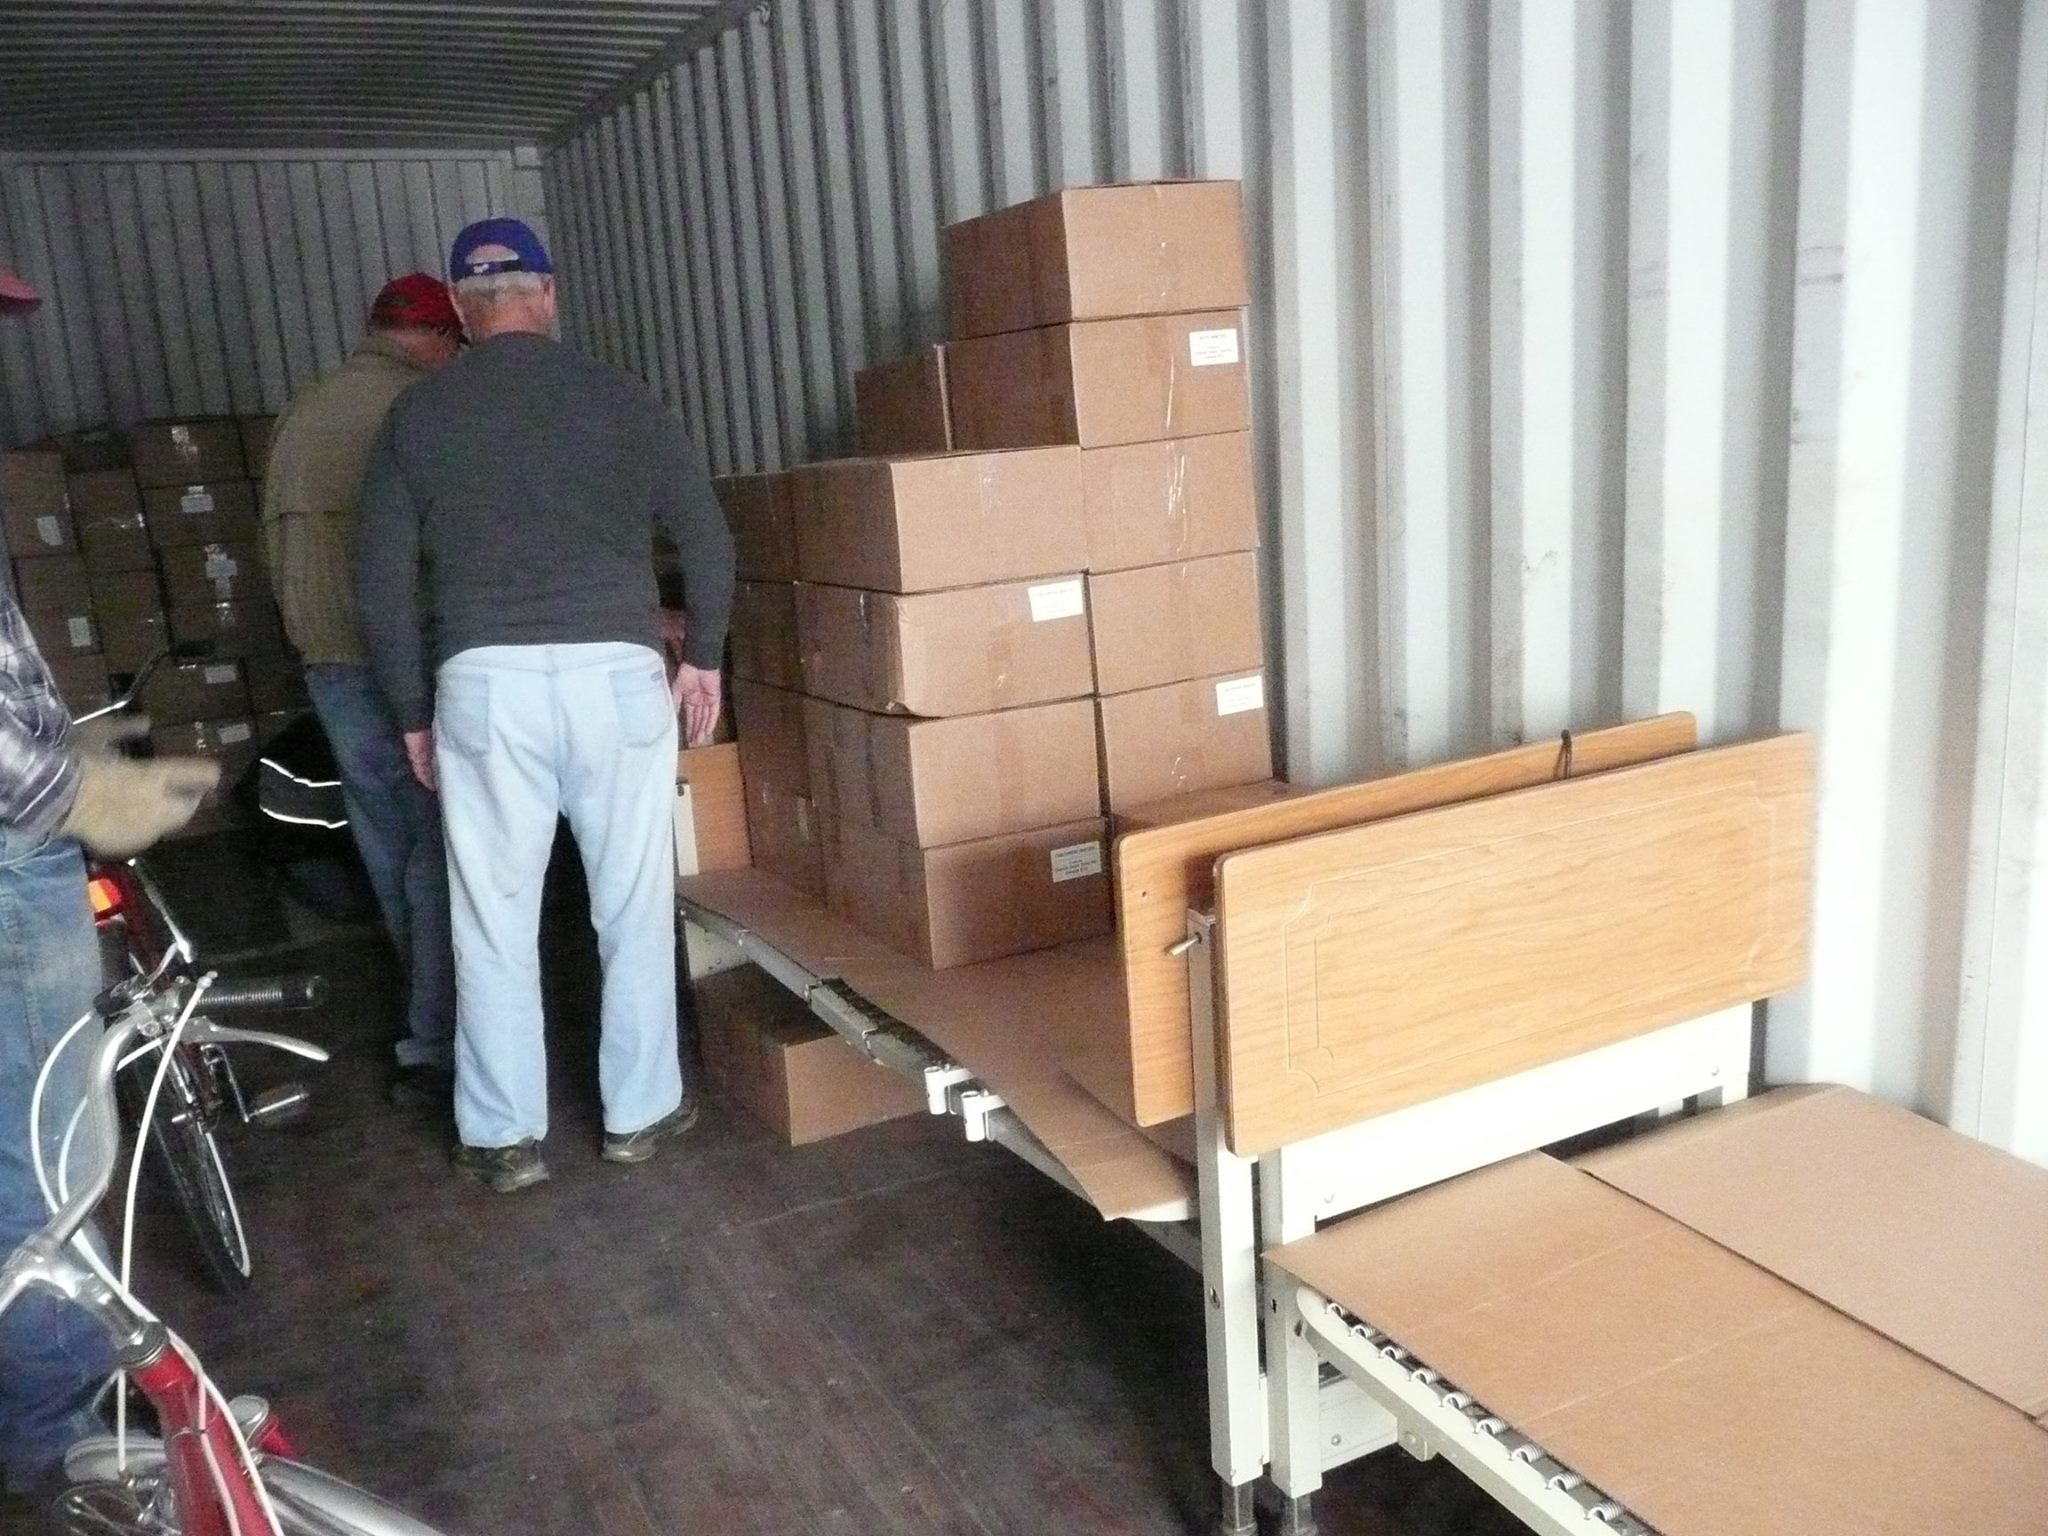 Central Nebraska Branch Volunteers Were Busy Loading Goods For Pastor Artis  Eglitis In Cesis, Latvia. Pastor Eglitis Started Gaugaslici Ministry Which  ...